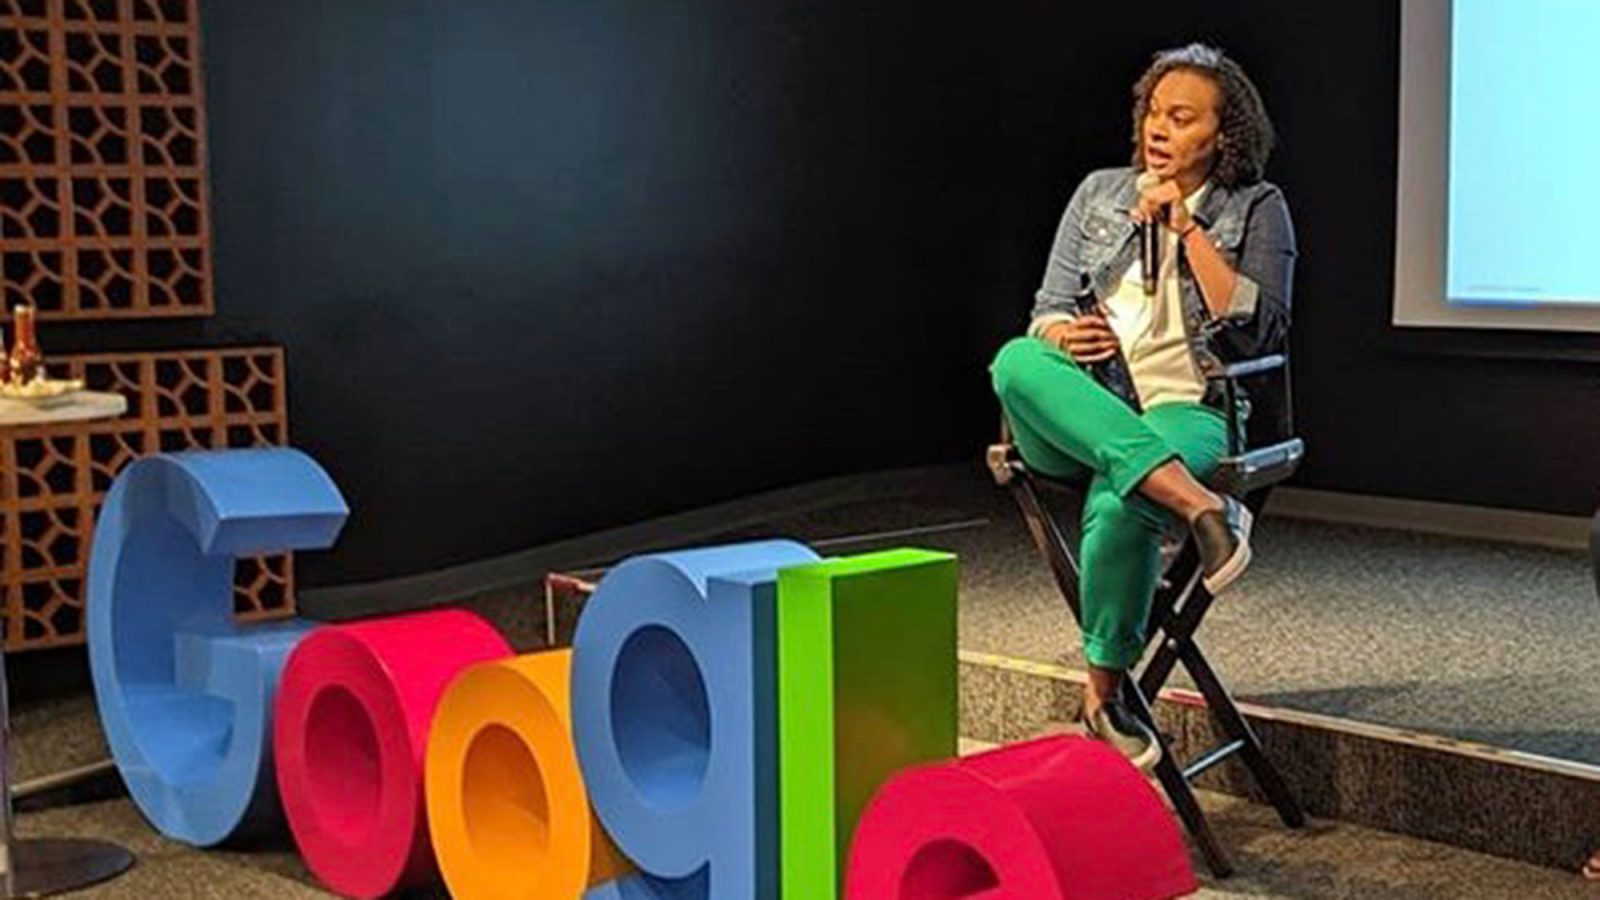 Cherizza Lundy sits in a chair on stage with a microphone in her hand and the Google logo in front of her.